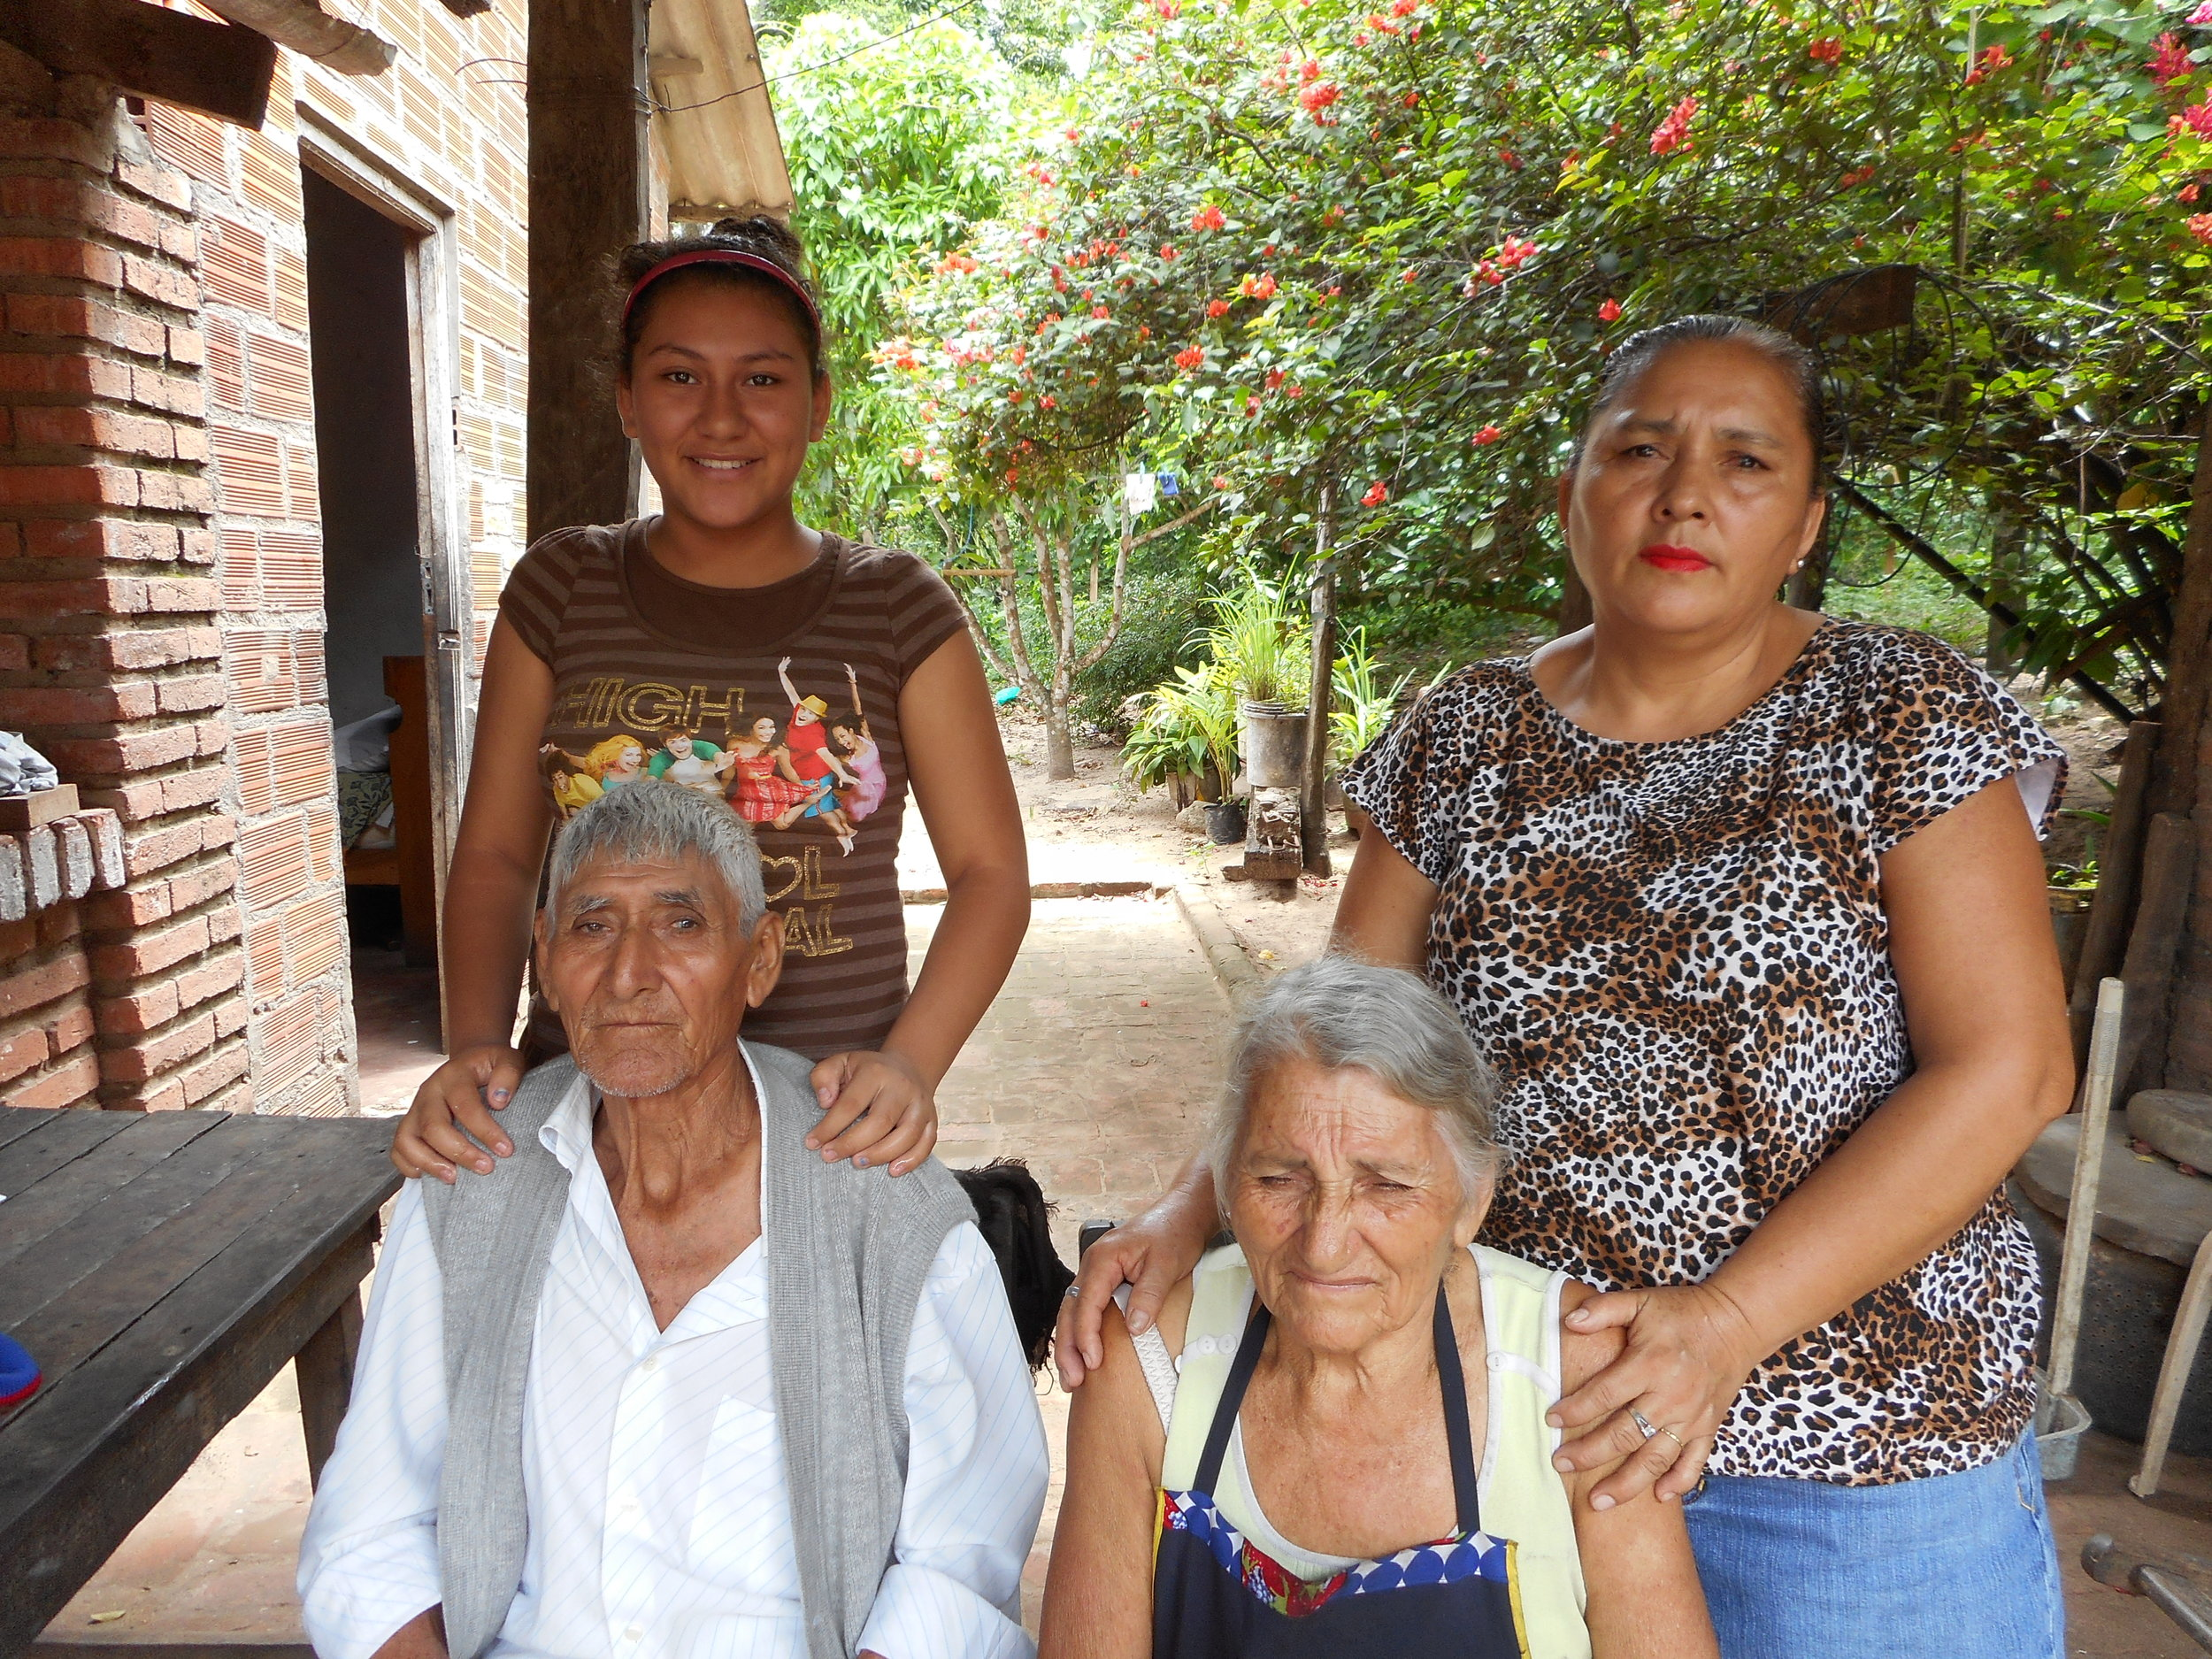 Santiago, 79 - At 79, Santiago took pride in his work as a landscaper and in his ability to sustain himself and his wife, Domitila, who is blind. But in late 2016, heart trouble started to keep him home. Although his children stepped in to help pay the bills, Santiago was eager to regain his independence so that they could focus on their own young families. Since receiving his implant, Santiago is back to tending the lawns at a local housing complex.